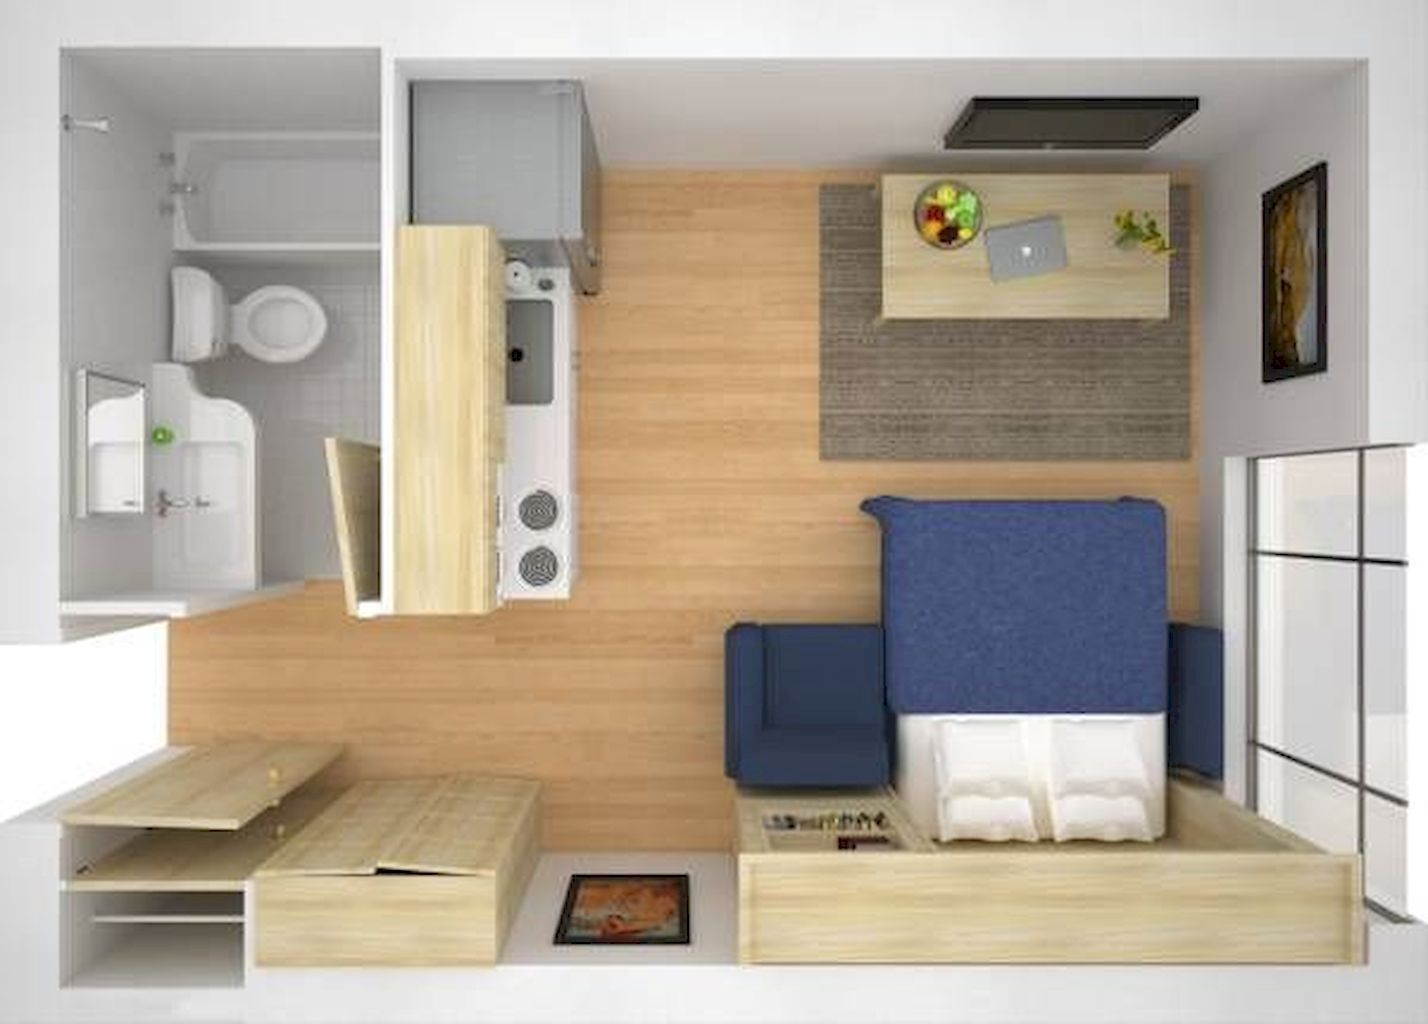 100 Small Studio Apartment Layout Design Ideas Home Design Disenos De Apartamentos Diseno Casas Pequenas Planos De Apartamentos Pequenos